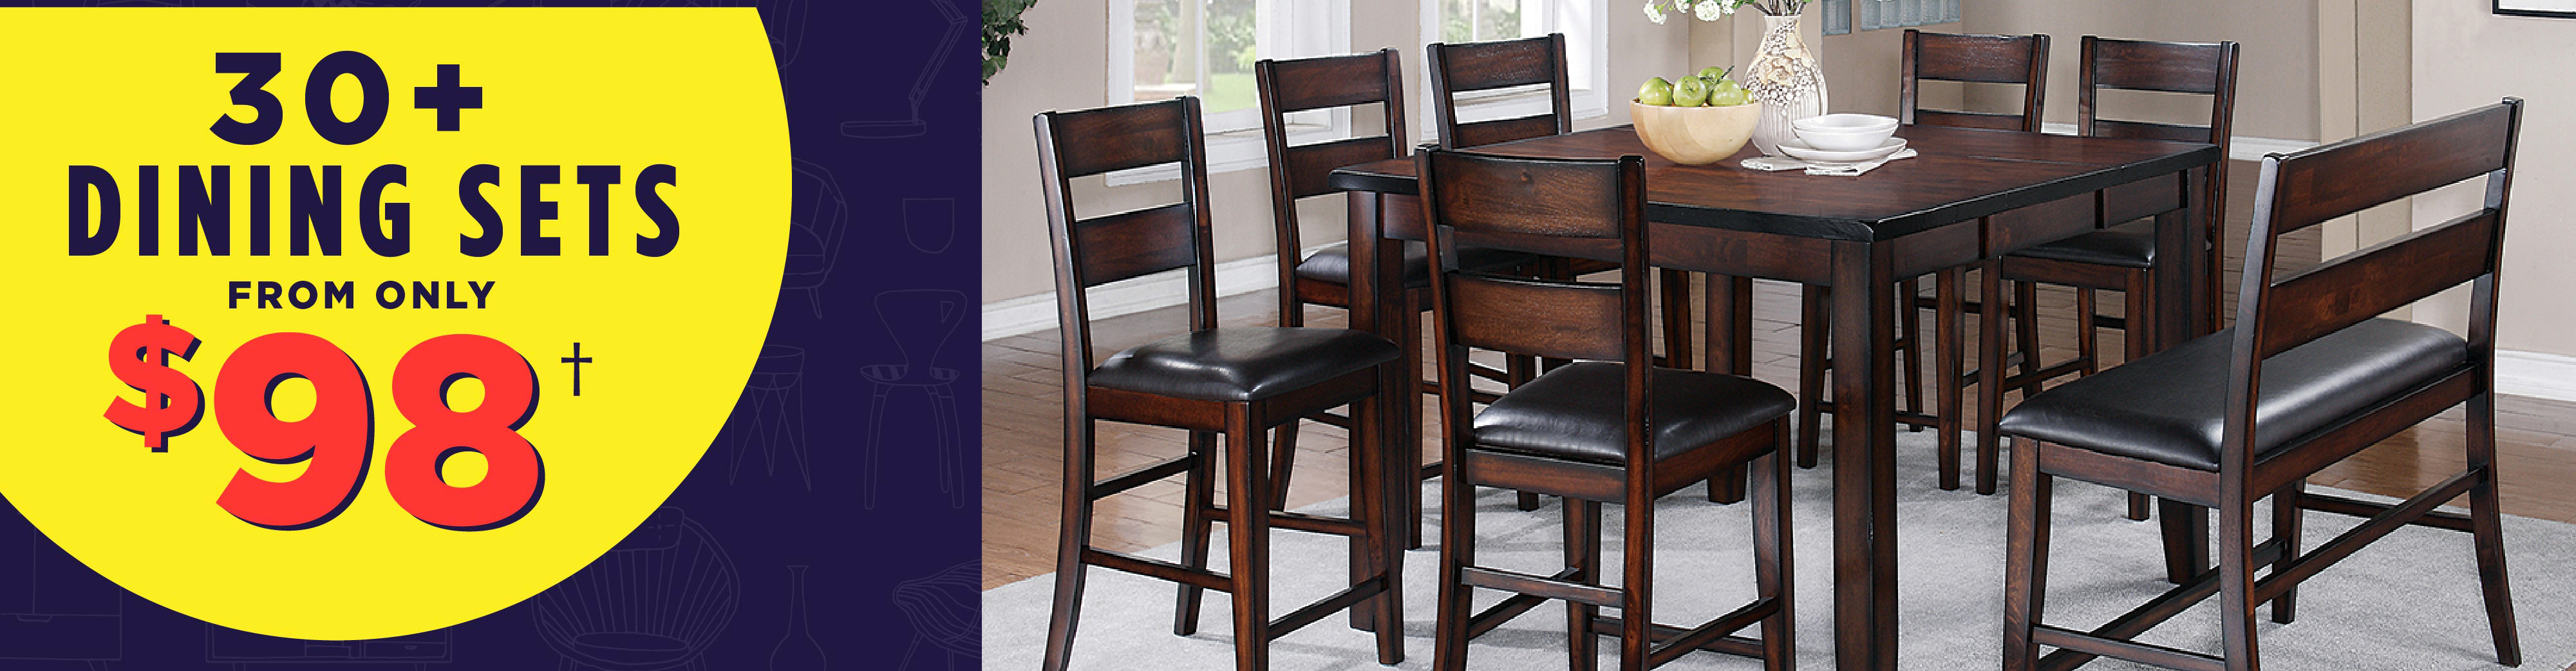 30+ Dining Sets from only $98!